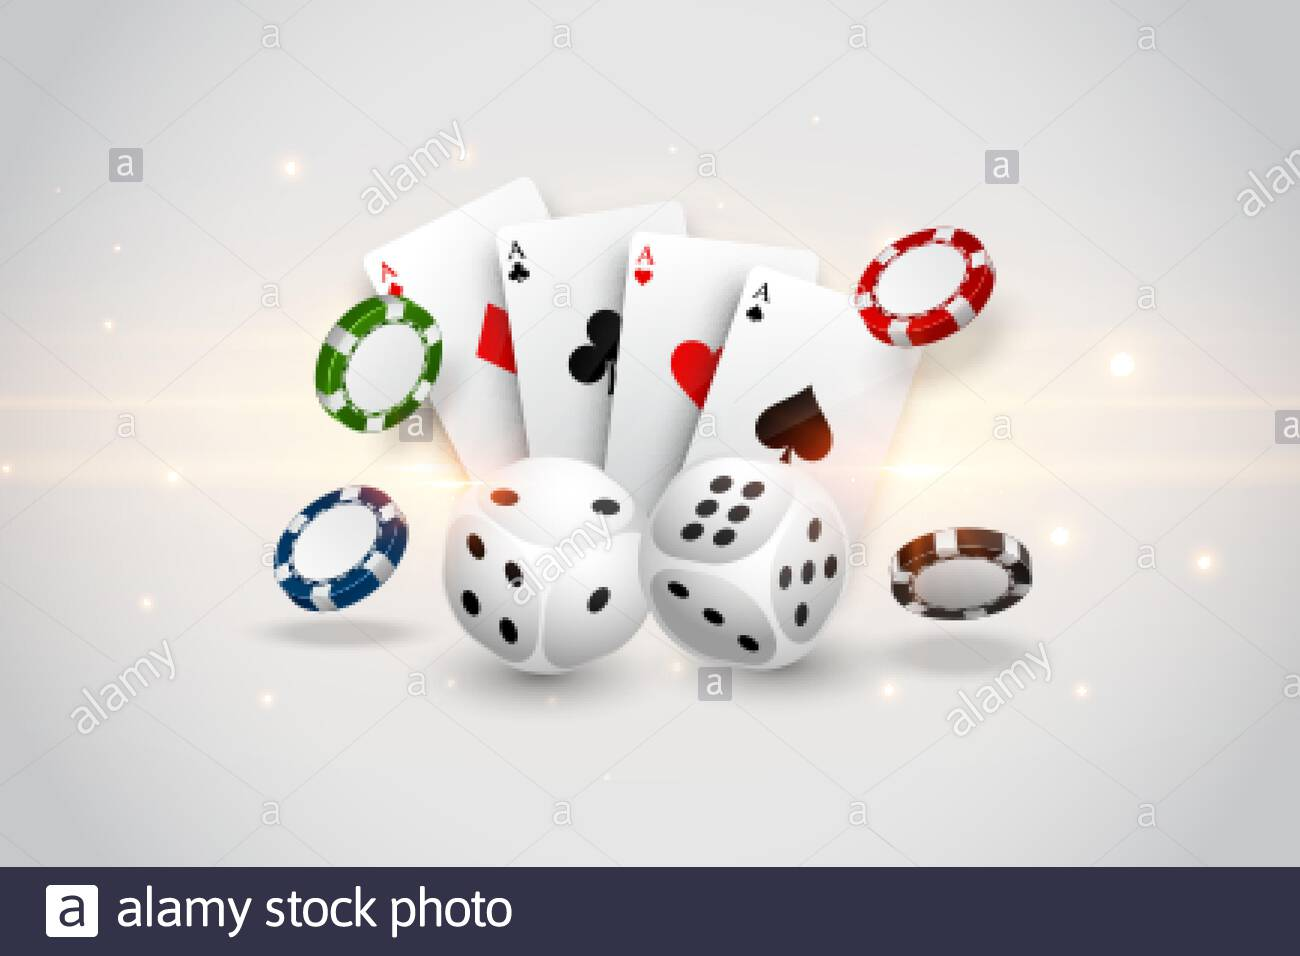 online casino with real money bonus